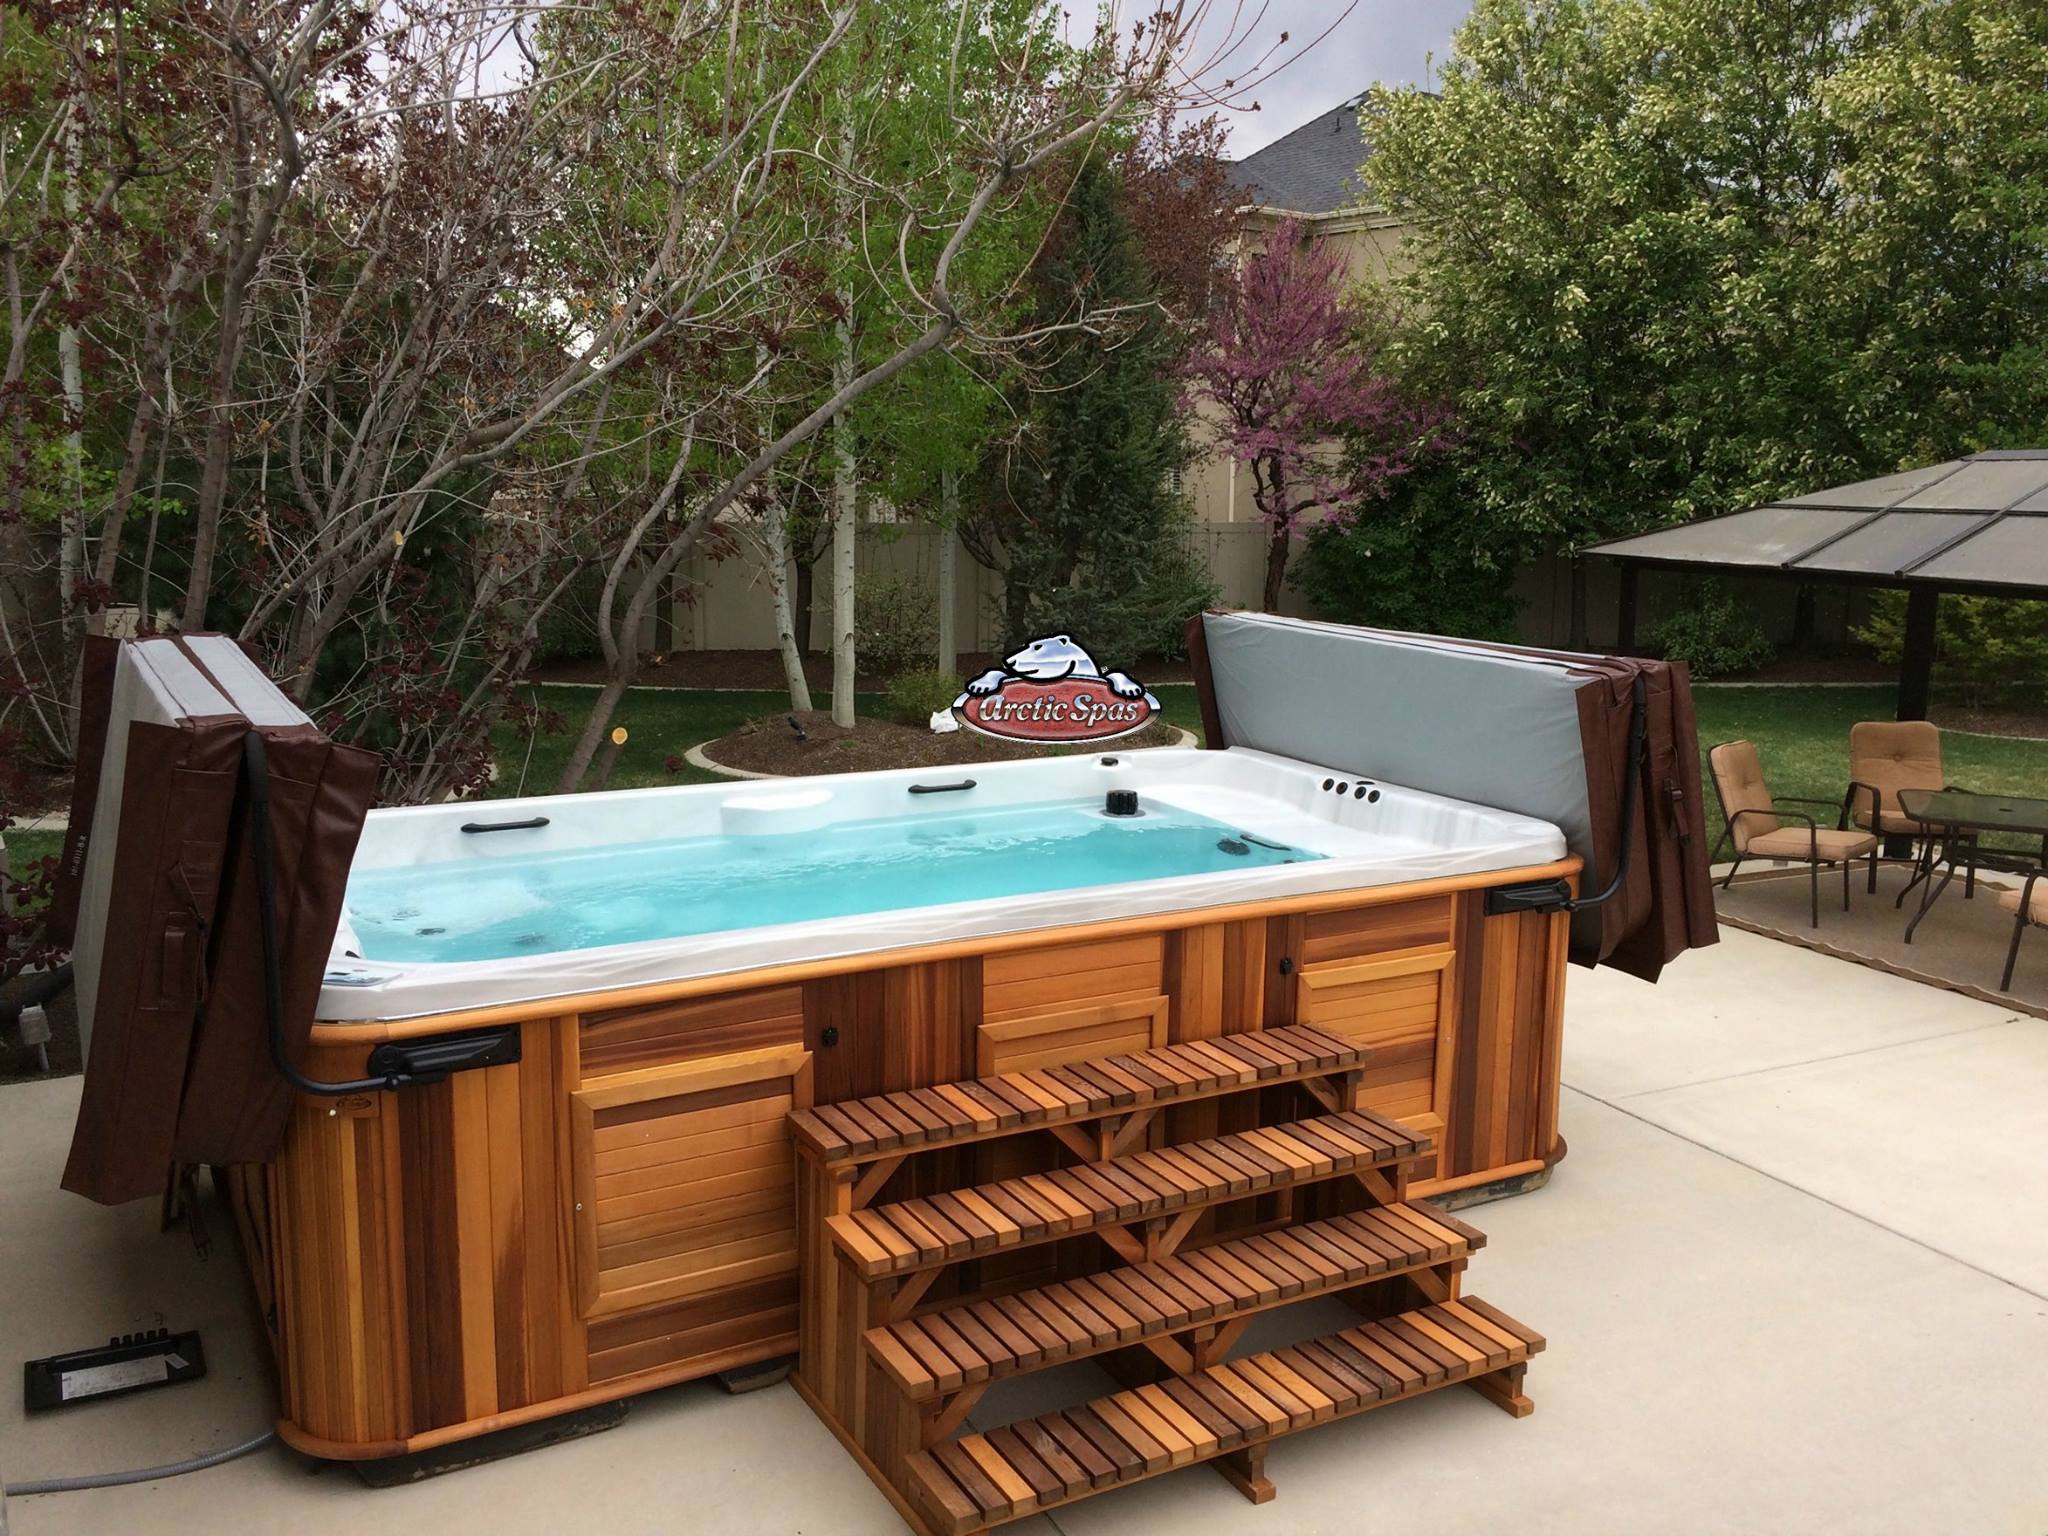 Arctic All Weather Pool in a backyard